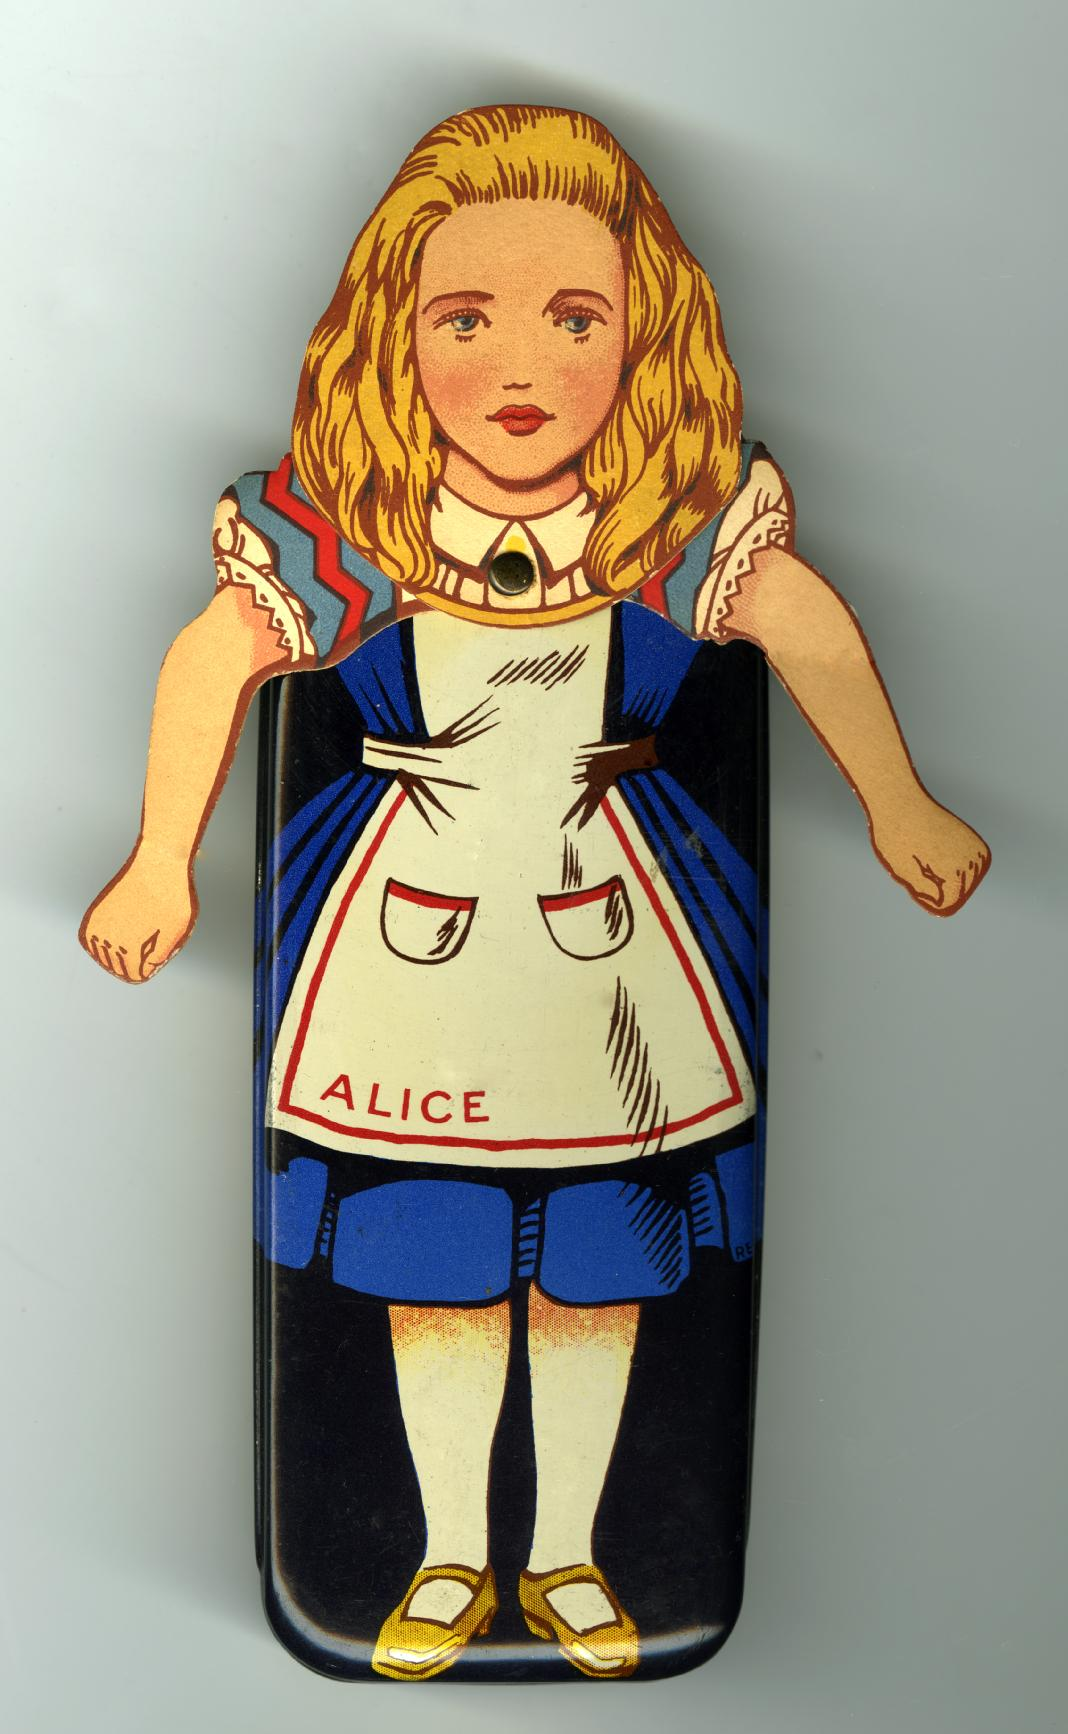 Alice from Alice in Wonderland illustration on a toffee tin